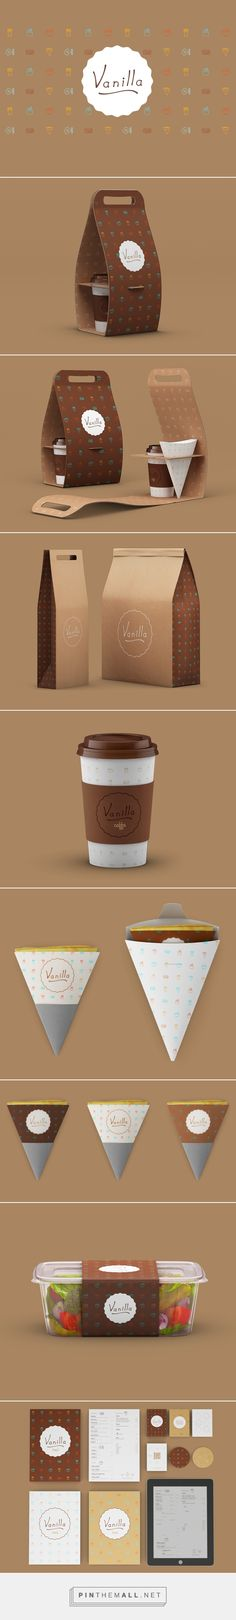 Vanilla identity packaging branding by Mario Dragic curated by Packaging Diva…